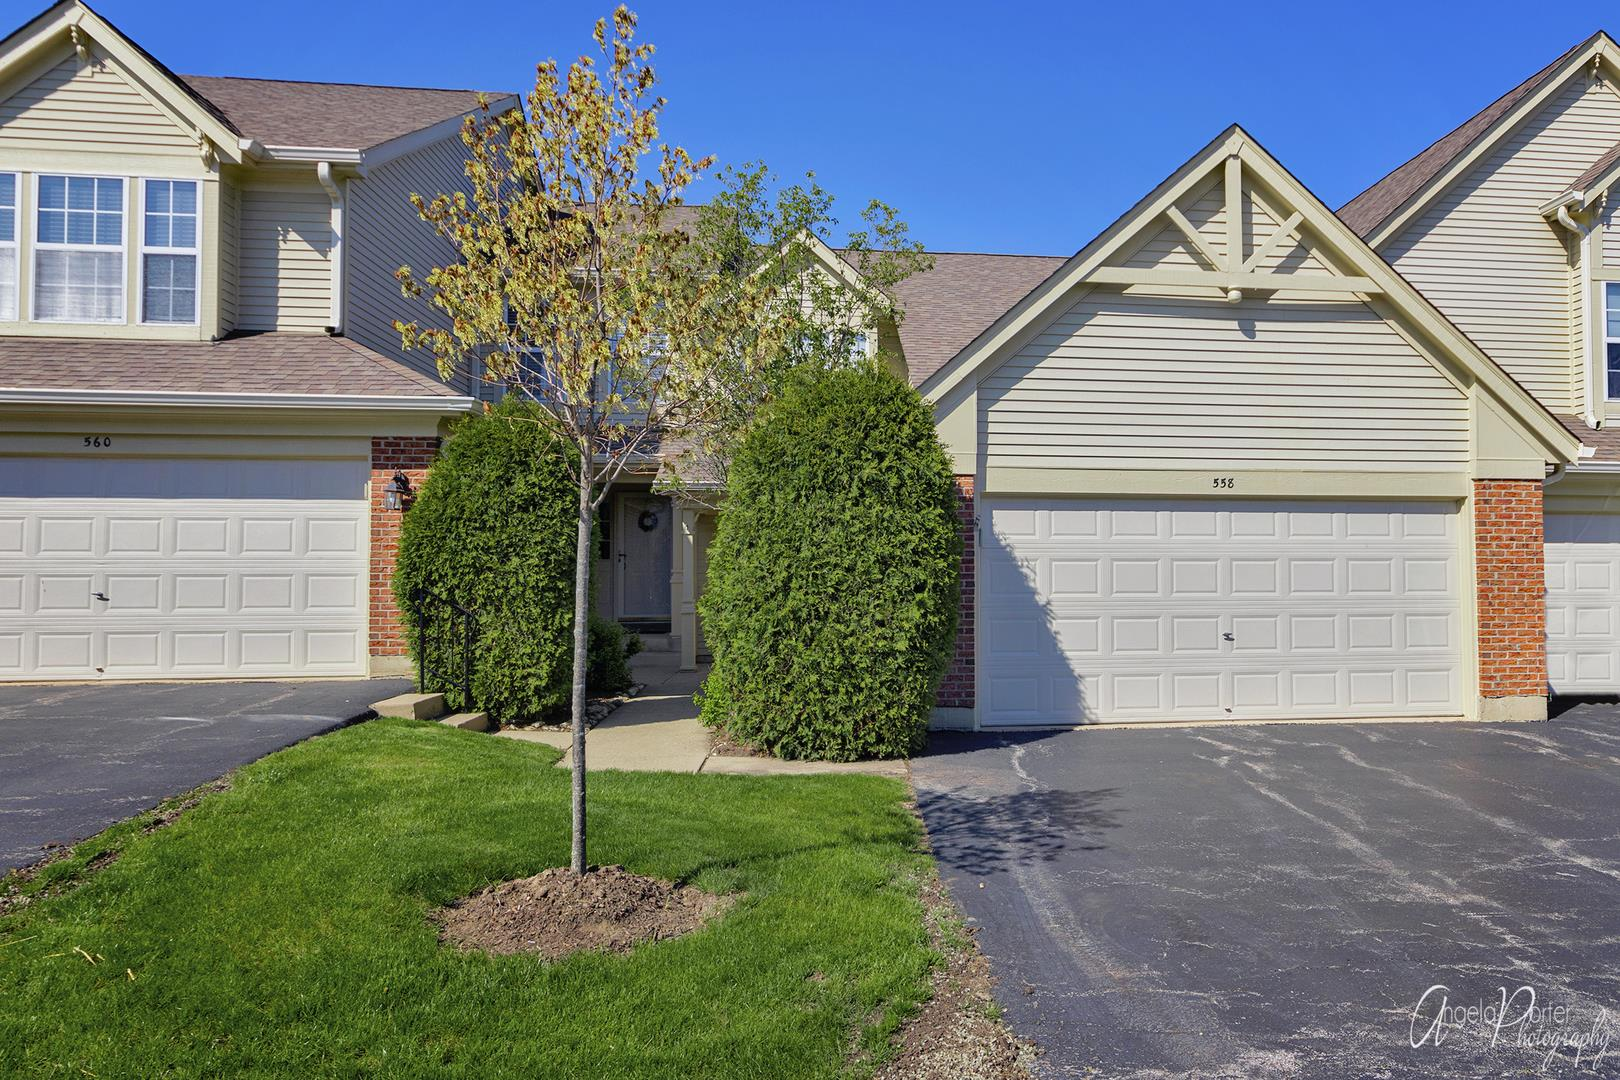 558 Portsmith Court #558, Crystal Lake, IL 60014 - #: 10674047